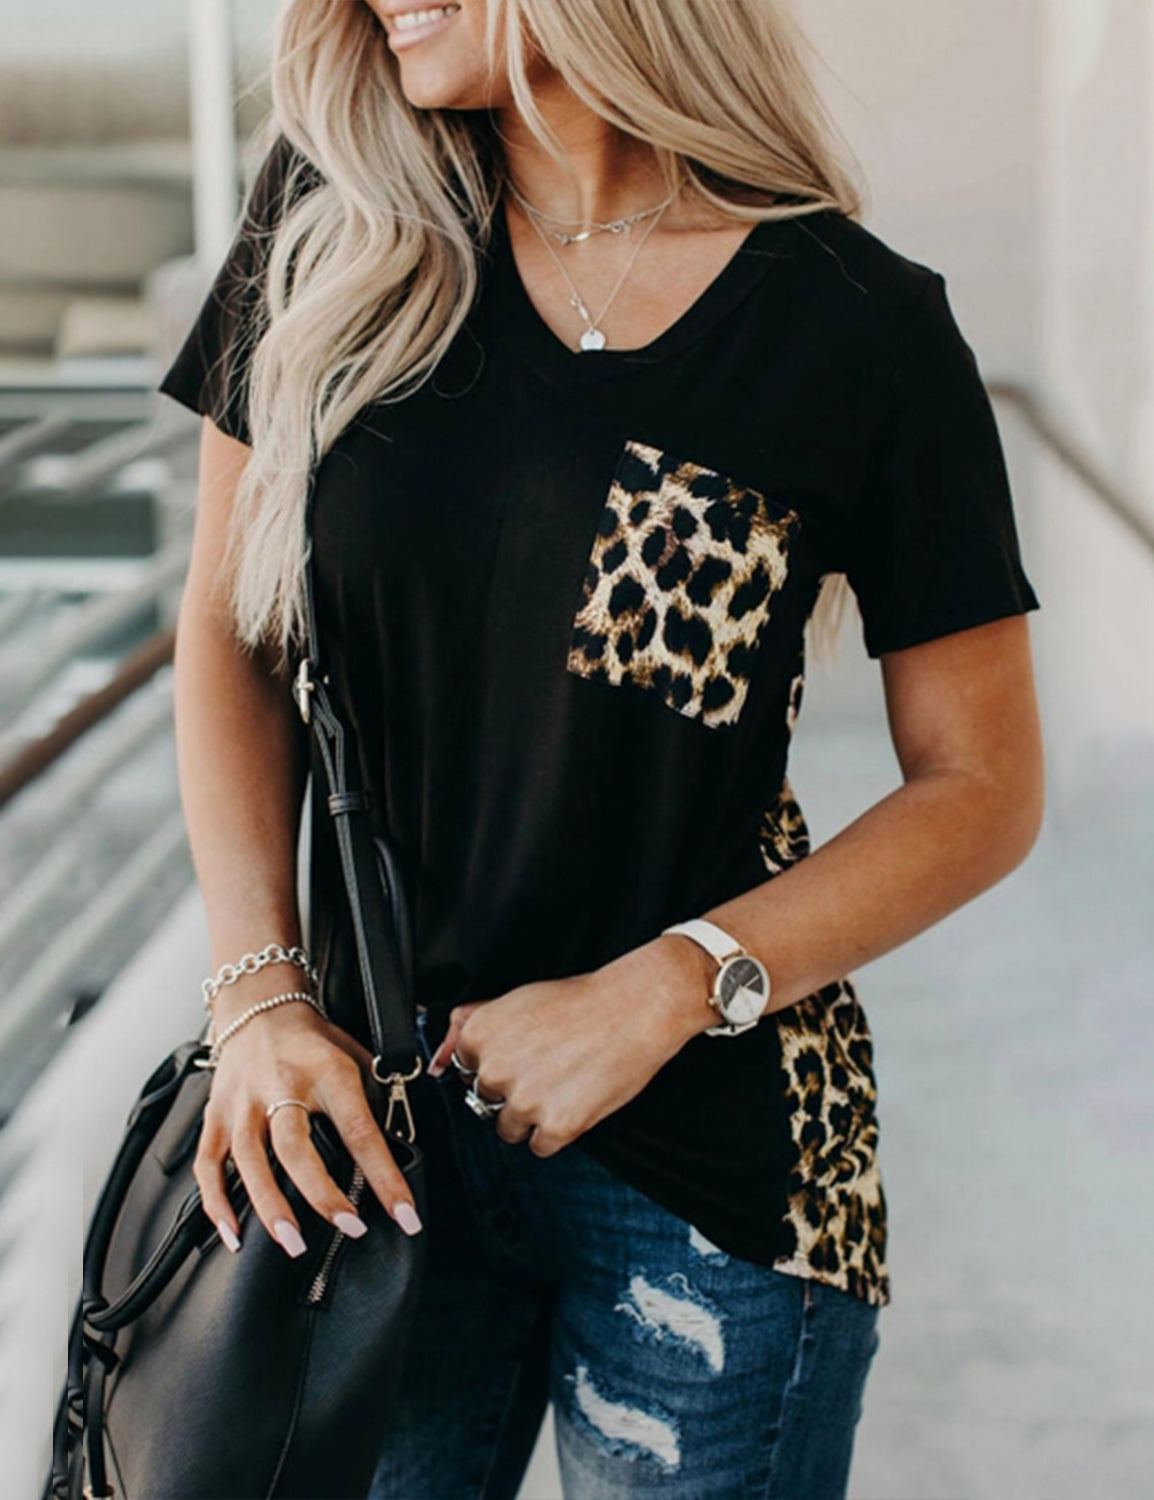 Blooming Jelly_Leopard Pocket Tunic Top Loose T-Shirt_Leopard Print_152674_22_Women Loose Summer Outfits_Tops_T-Shirt